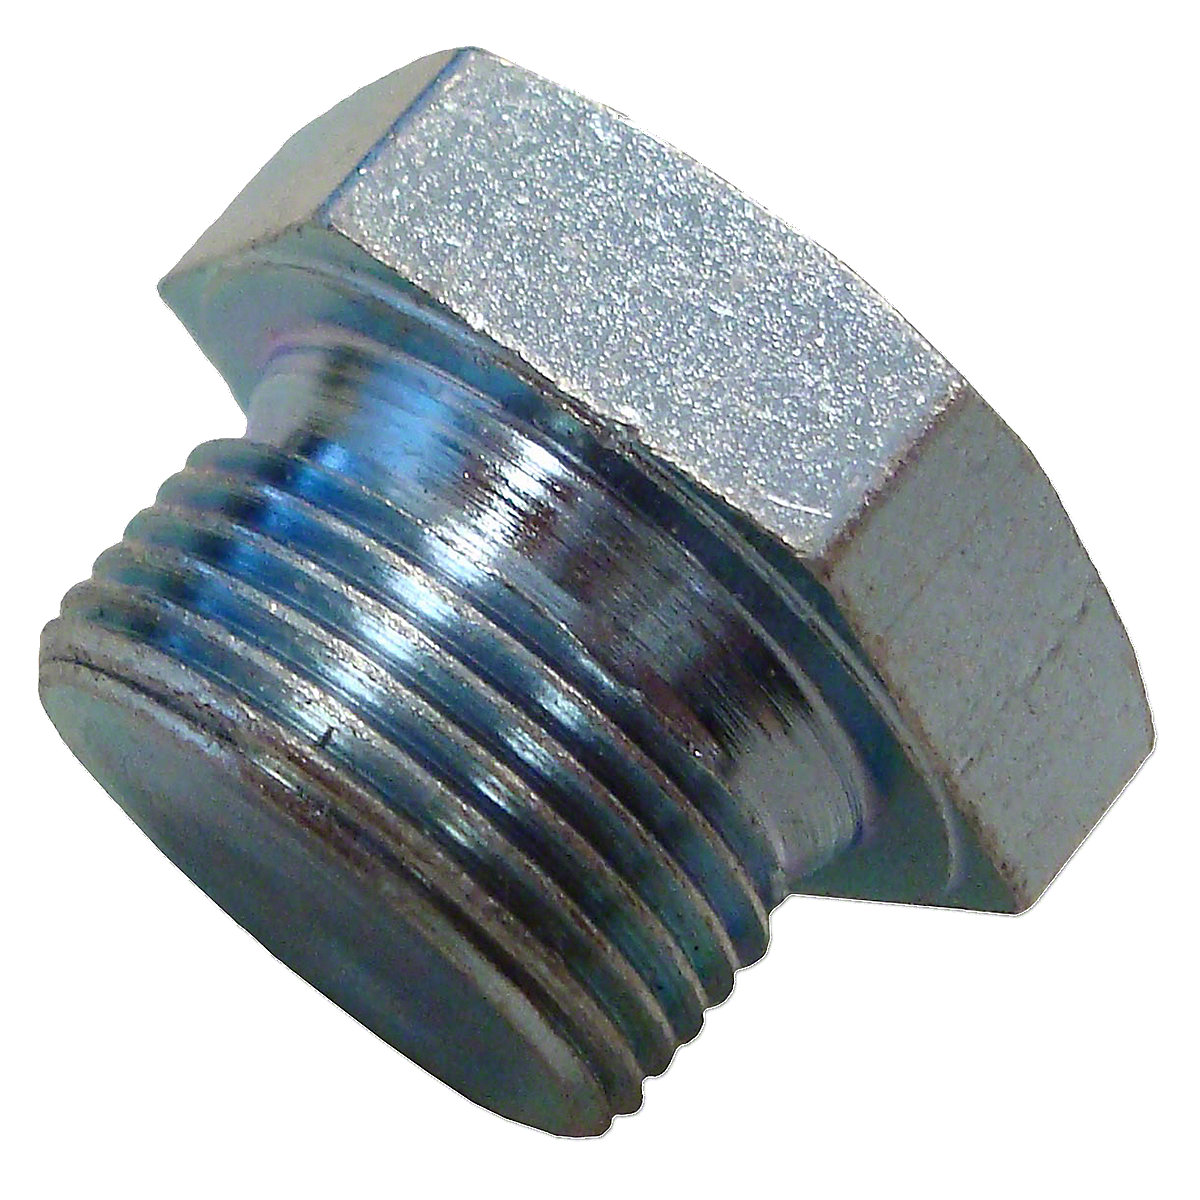 Oil Pan Drain Plug For Allis Chalmers: 190XT, B, C, CA, D10, D12, D14, D15, D17, D19, D21, IB, WC, WD, WD45, 170 & 175 Gas, 180, 185, 190, 200, 210, 220, 6060, 6070, 6080, 7000, 7010, 7020, 8010